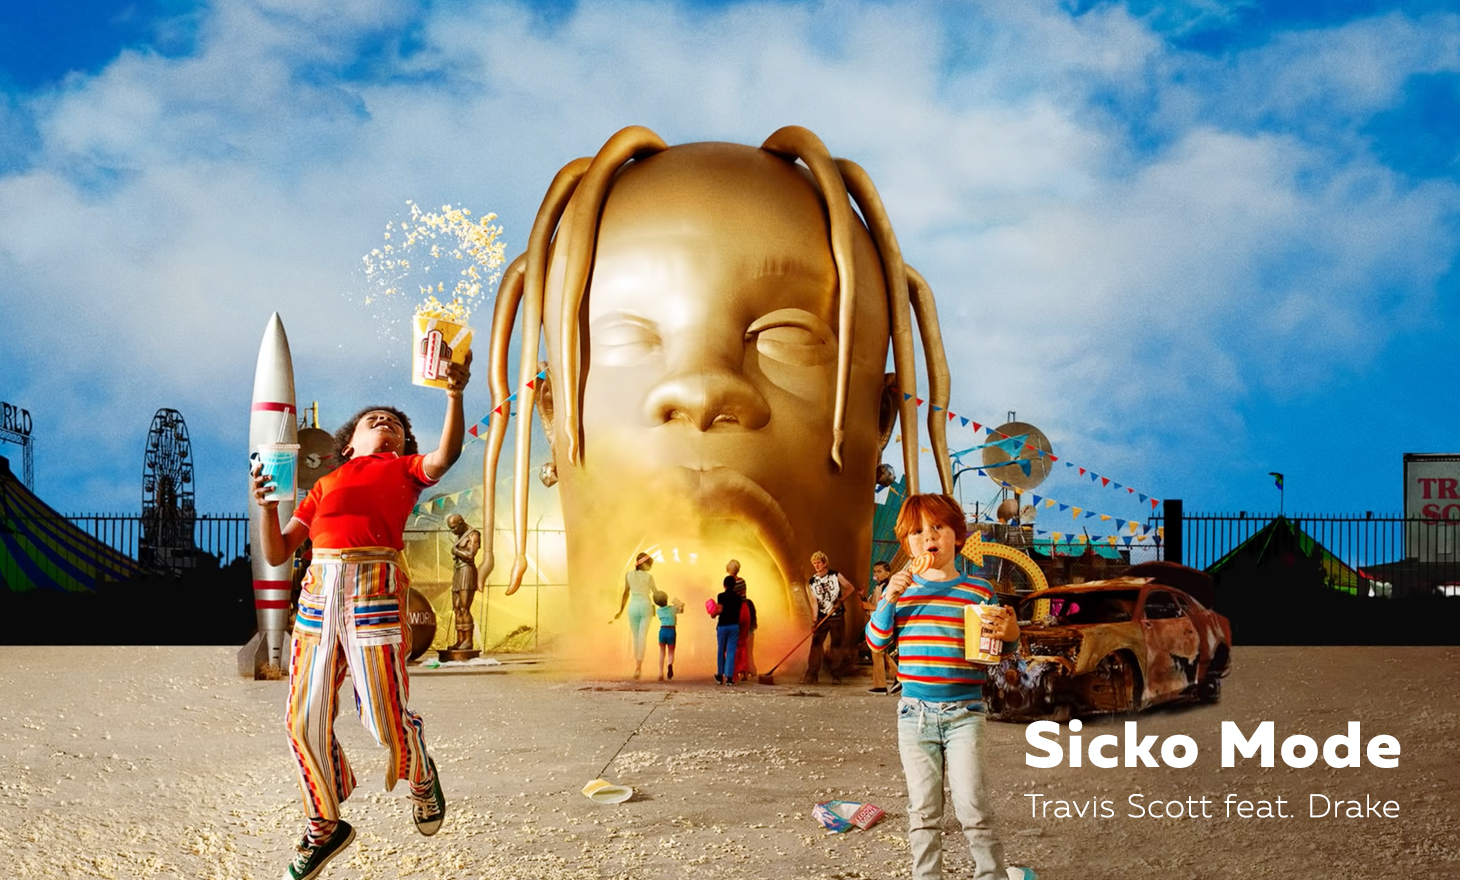 Travis Scott feat. Drake : Sicko Mode